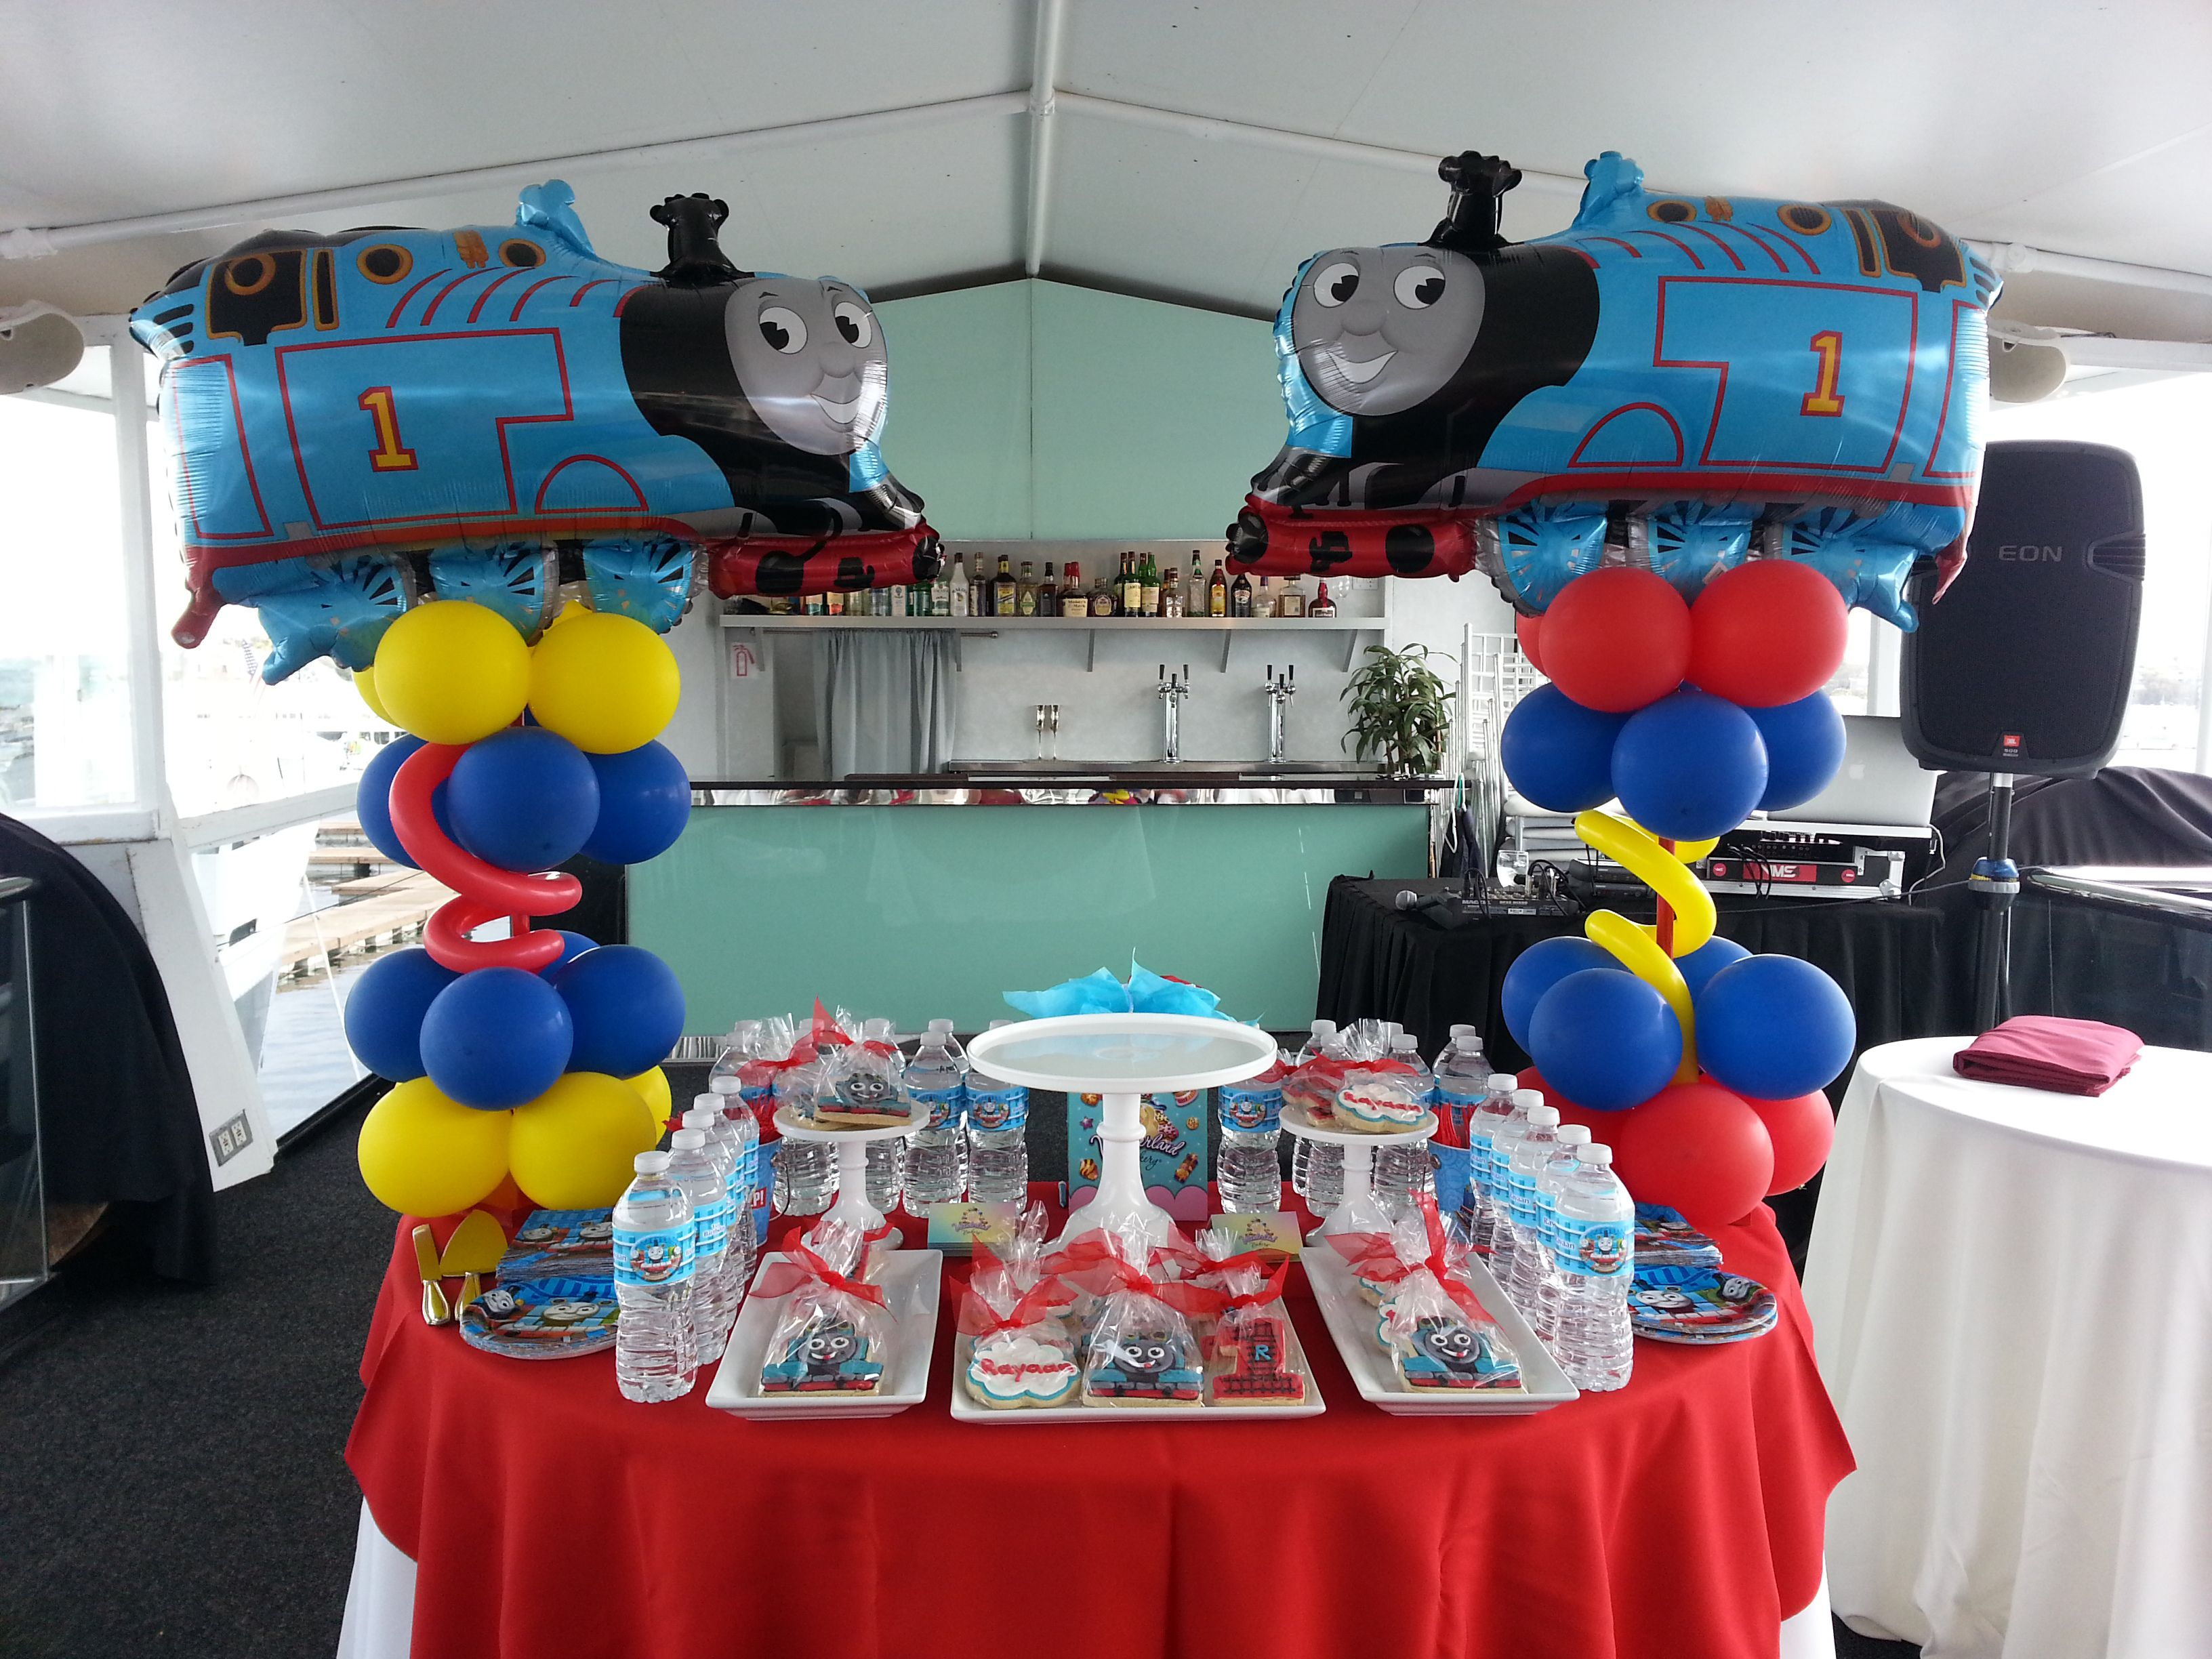 2 Marvelous Thomas The Train Birthday Party Decorating